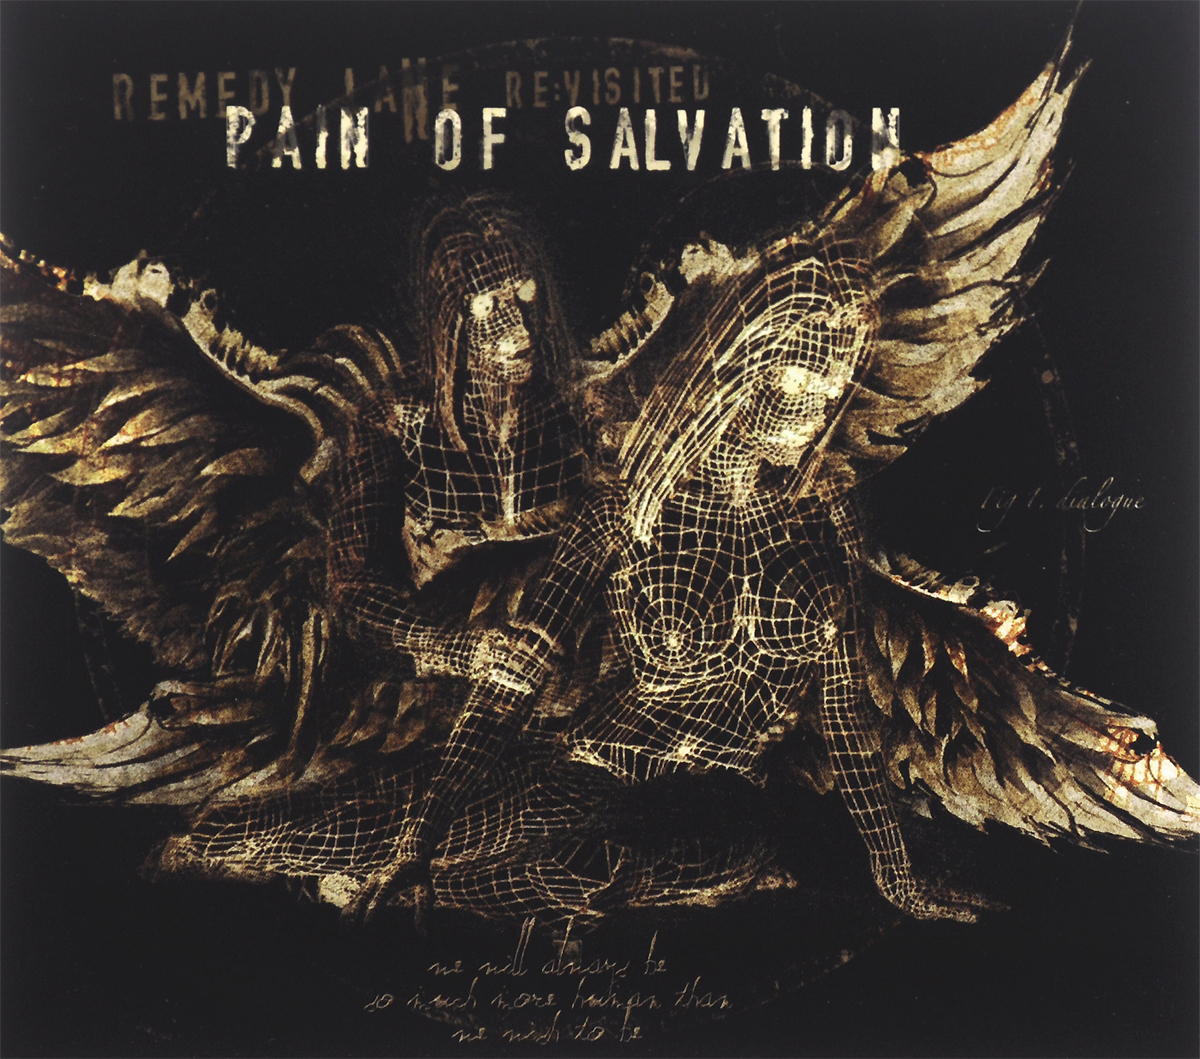 Pain Of Salvation Pain Of Salvation. Remedy Lane Re:Visited (Re:Mixed & Re:Lived) (2 CD) ending themes on the two deaths of pain of salvation limited edition 2 dvd 2 cd